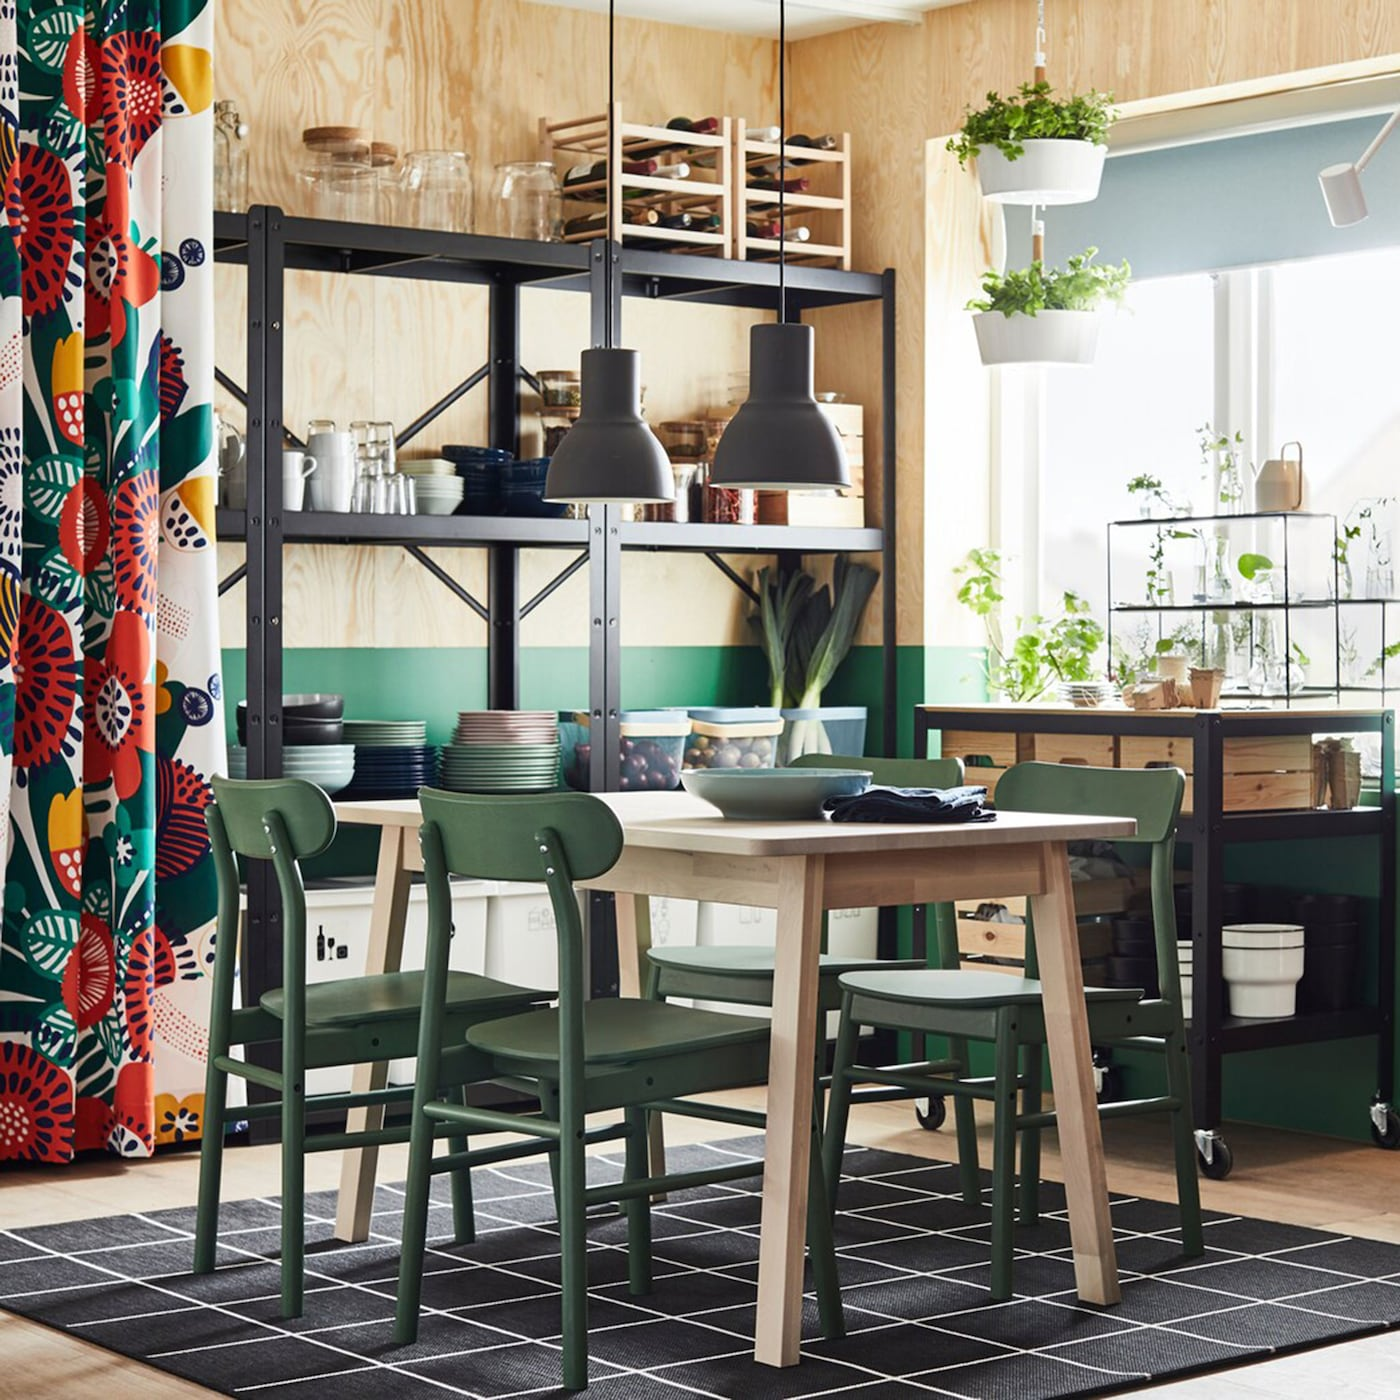 Freestanding Storage In An Flower Powered Dining Area